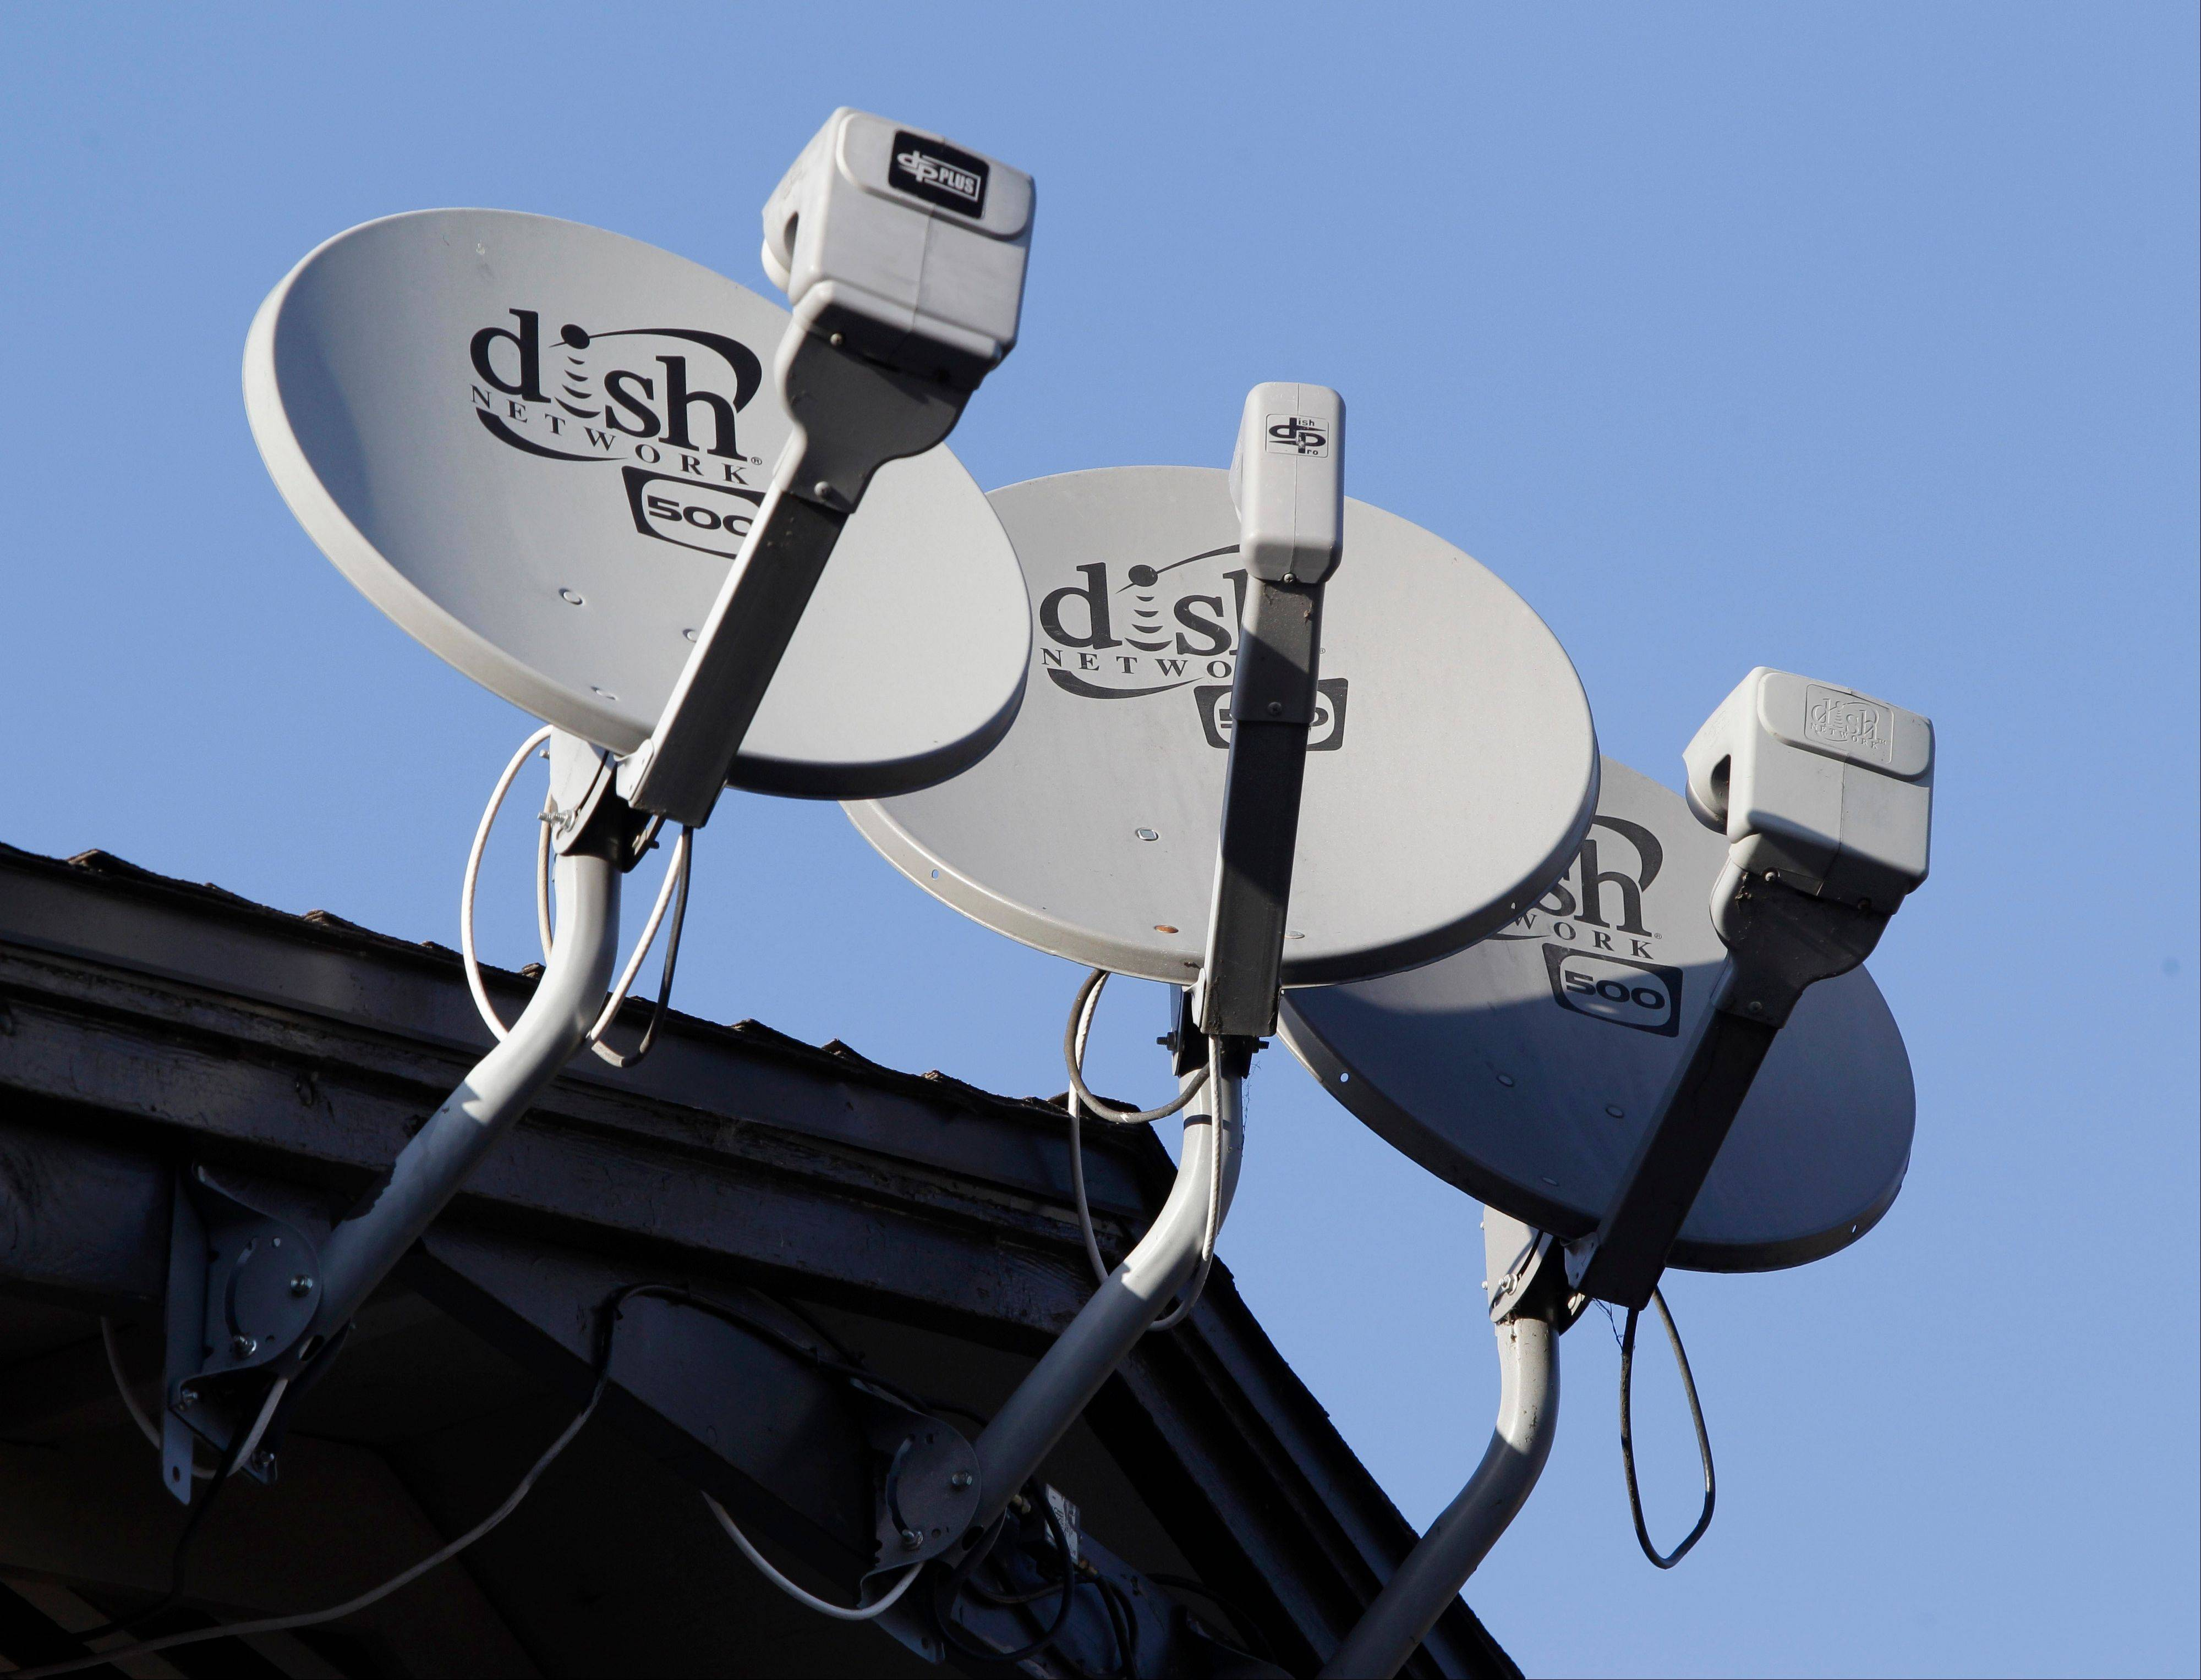 Sprint is suing to stop Dish Network's buyout of wireless data network operator Clearwire. The nation's third-largest cellphone carrier said the proposed deal violates the rights of Sprint and other Clearwire shareholders.